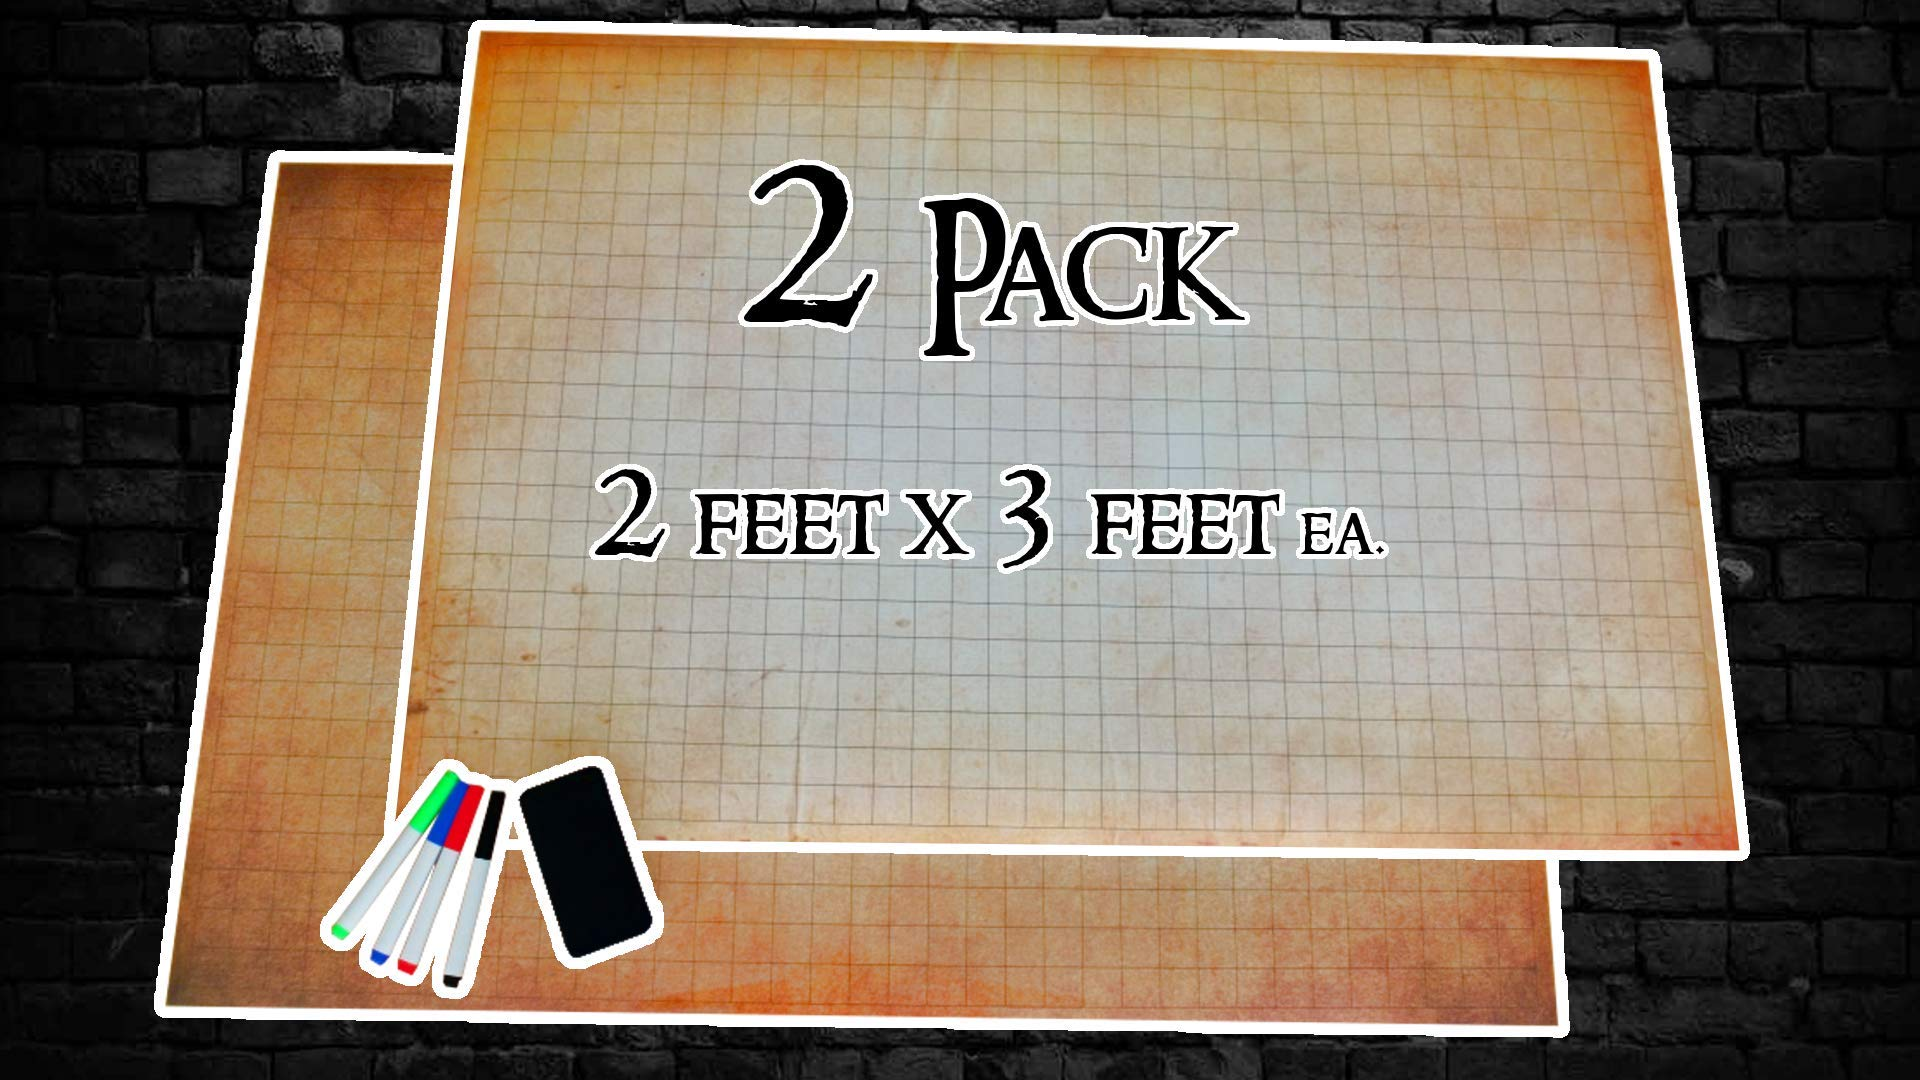 RPG Battle Gaming Mat   2 Pack 24'' x 36'' with 1'' Grid System   Includes 4 Colored Markers and Eraser   Great for Dungeons and Dragons (DND) Games   Tabletop Grid Board